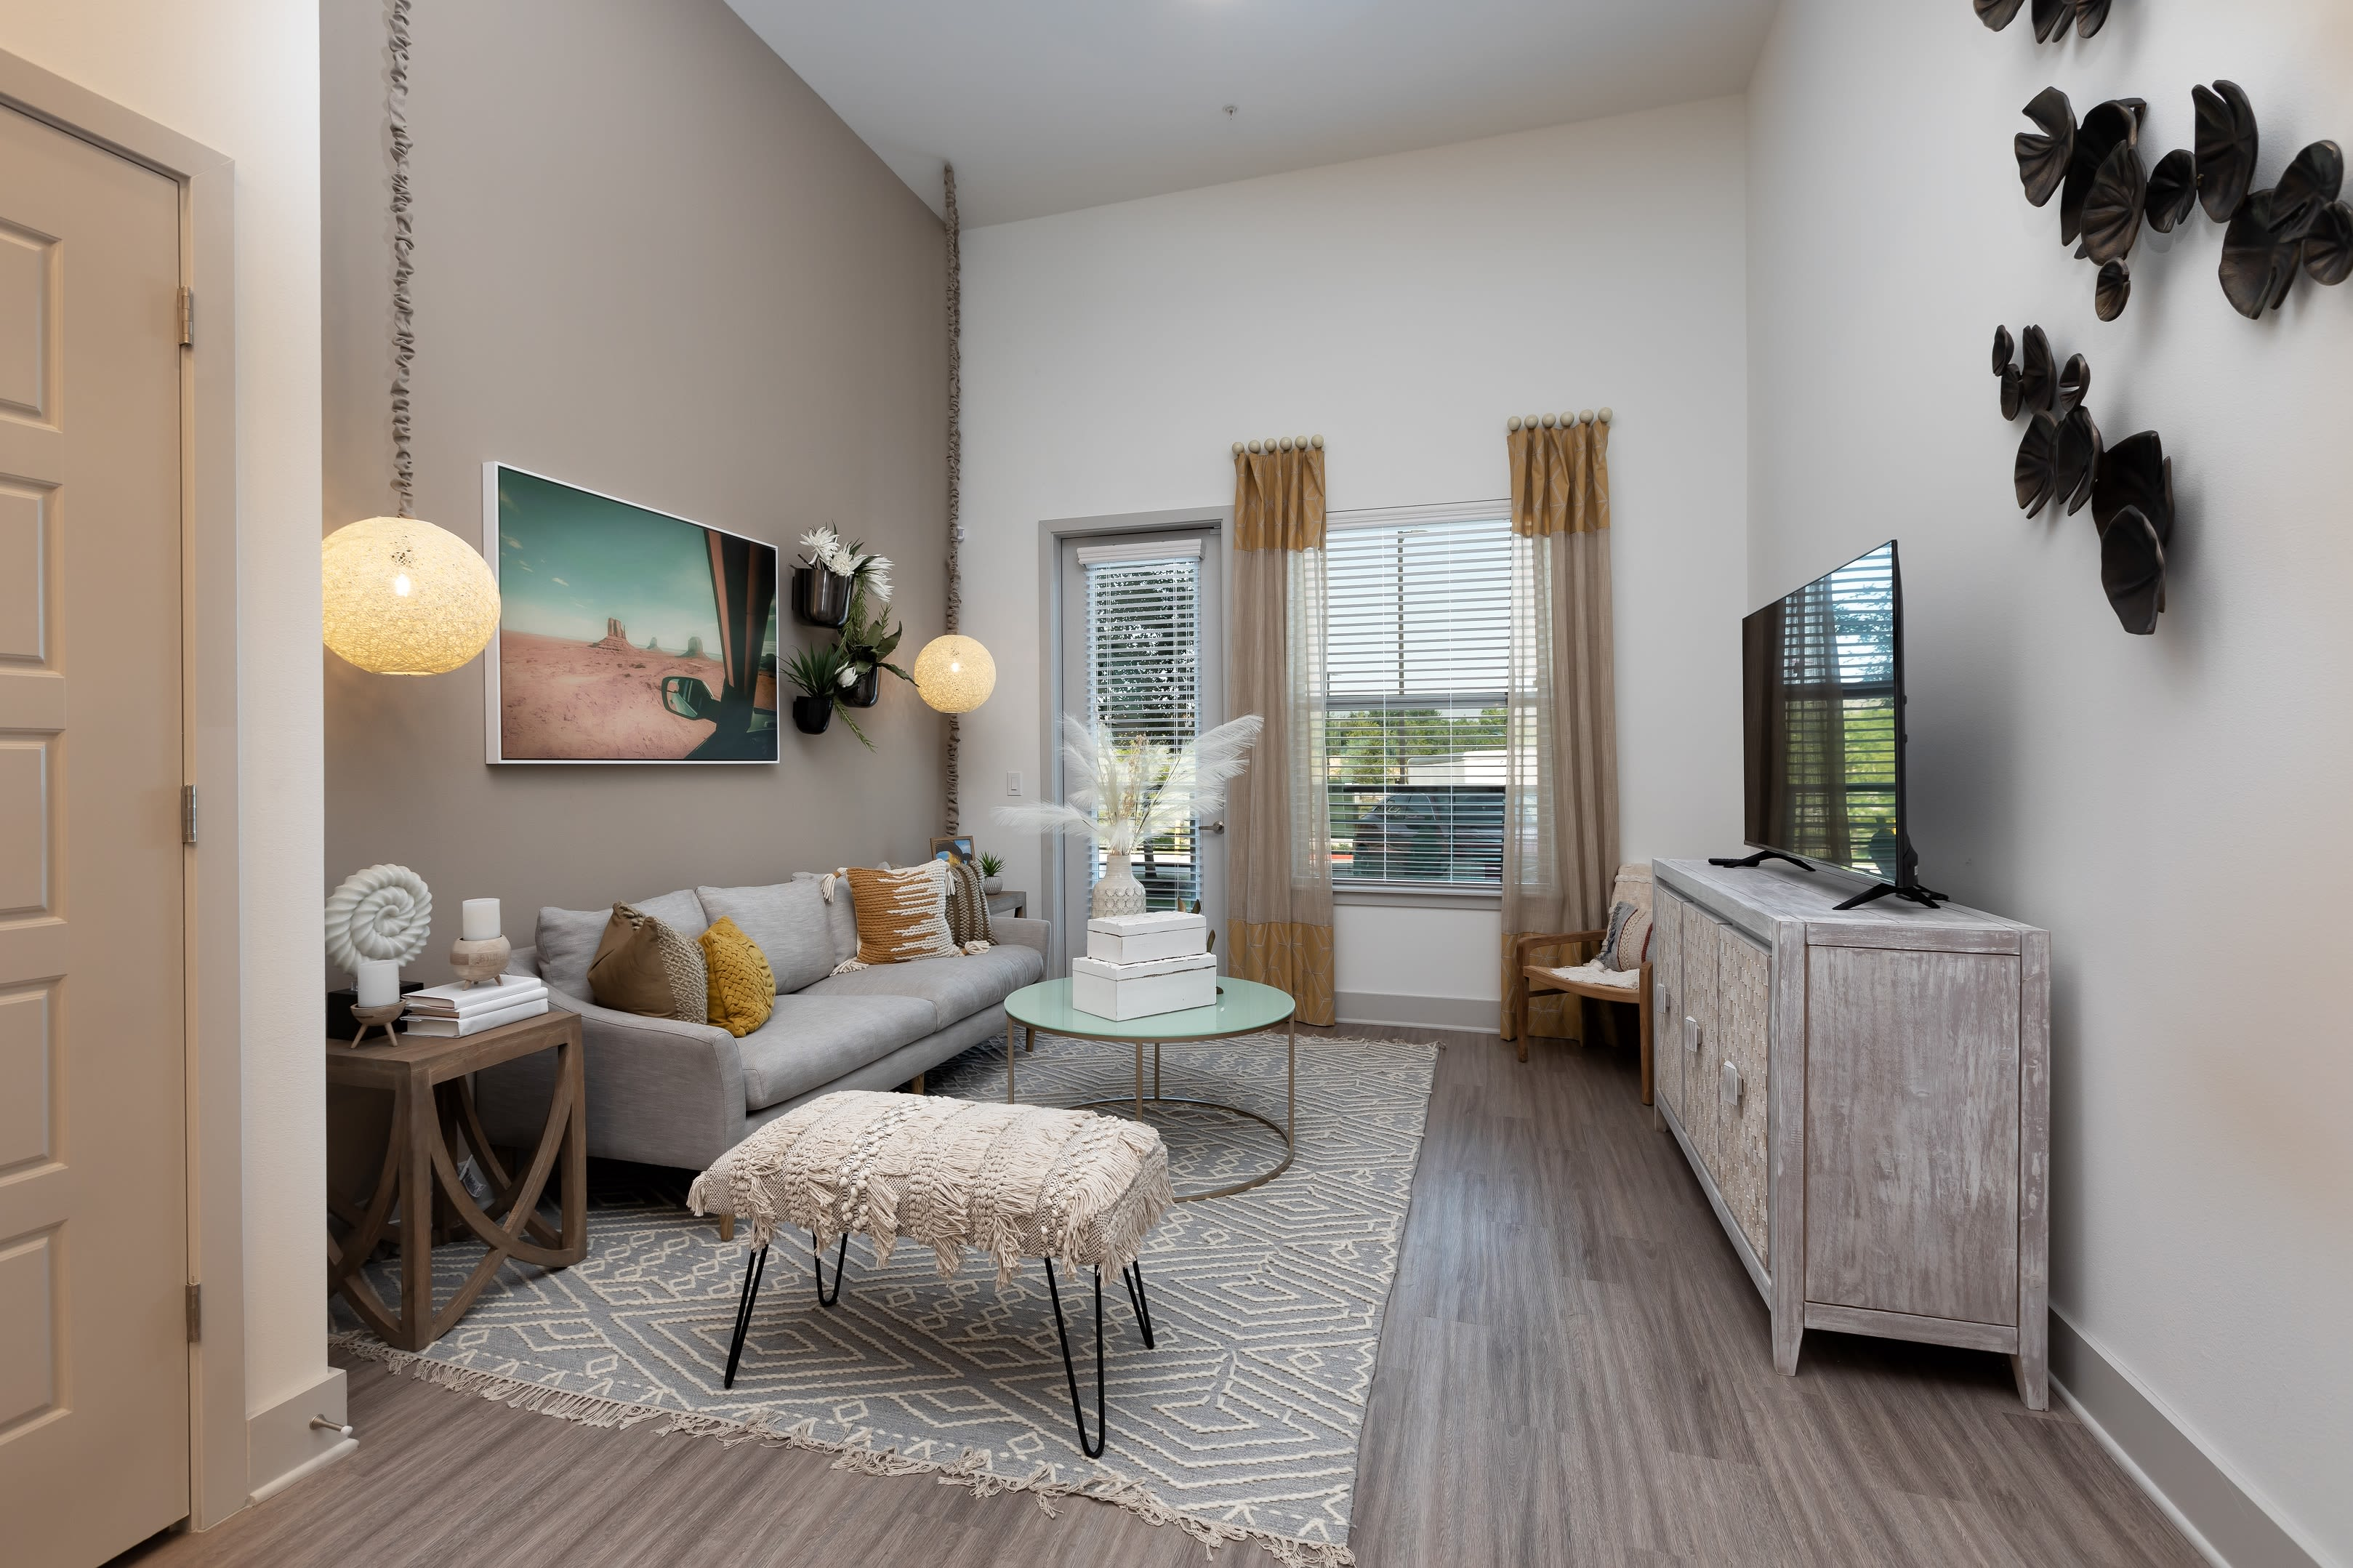 Open concept kitchen and living room at The ReVe in Garland, Texas